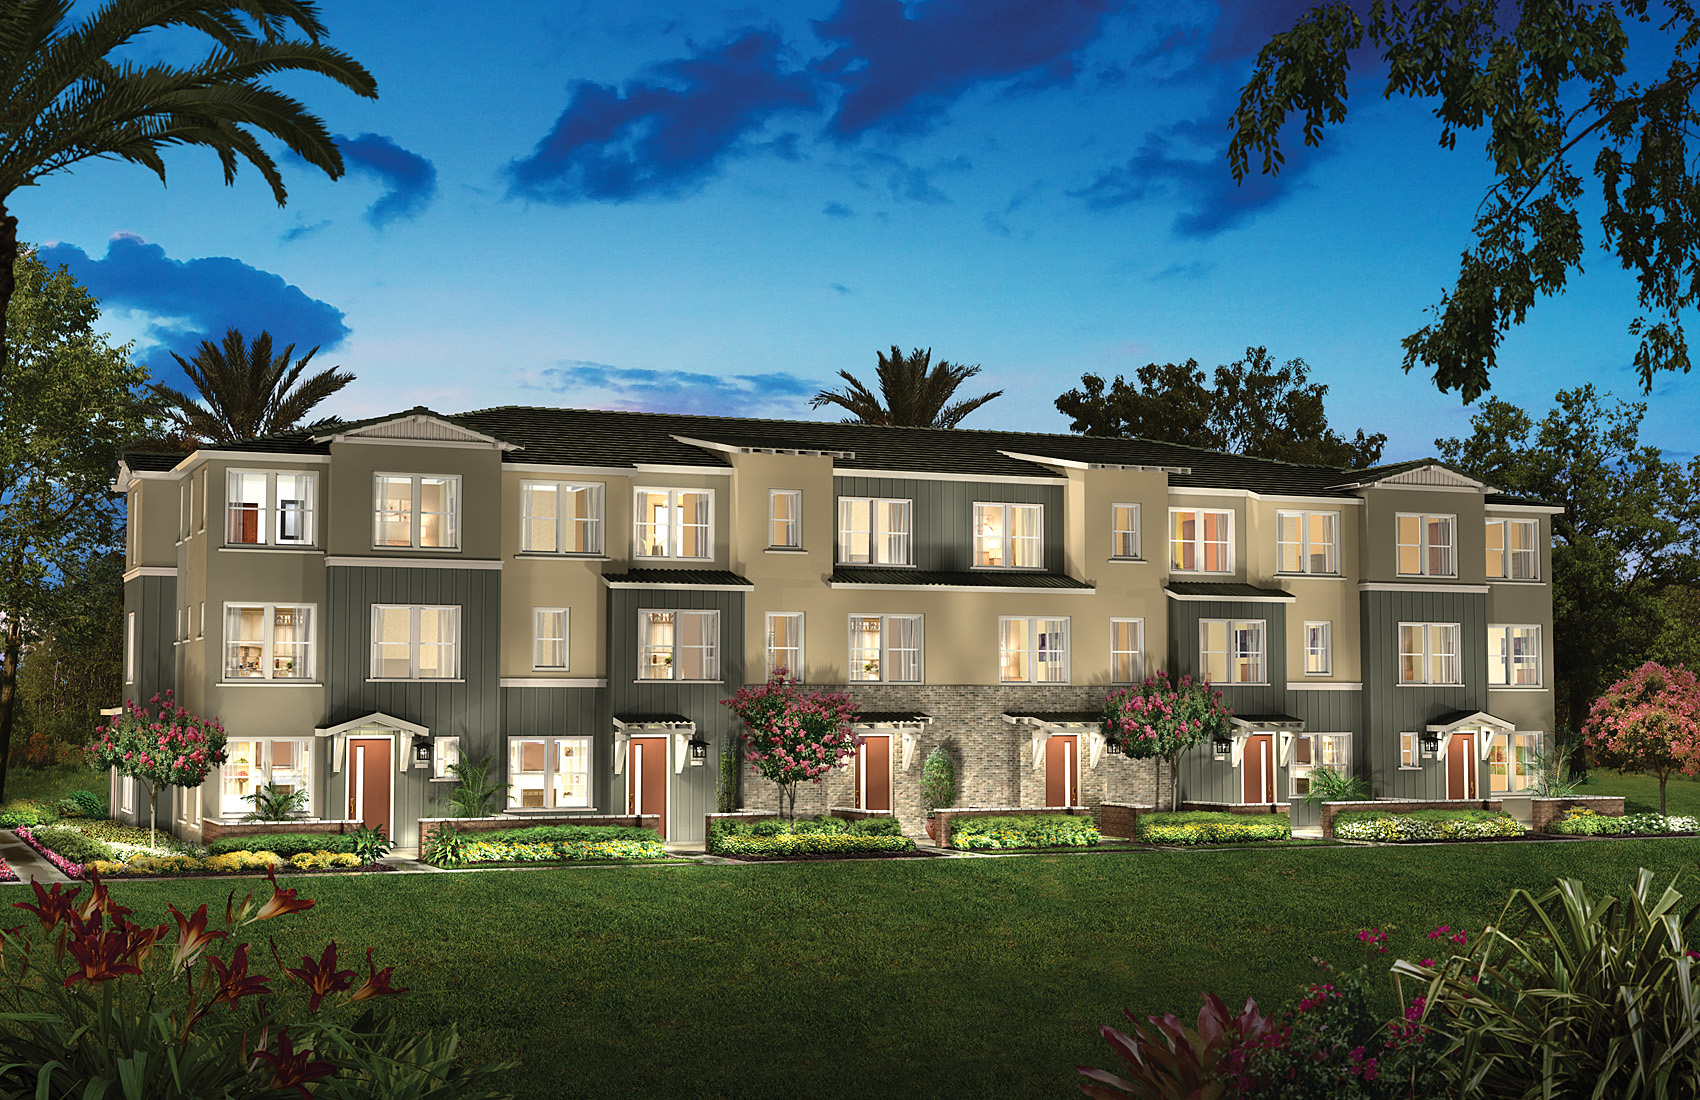 row-home-style residences, Encore, Shea Homes, Aliso Viejo, real estate, new homes,homebuilder,